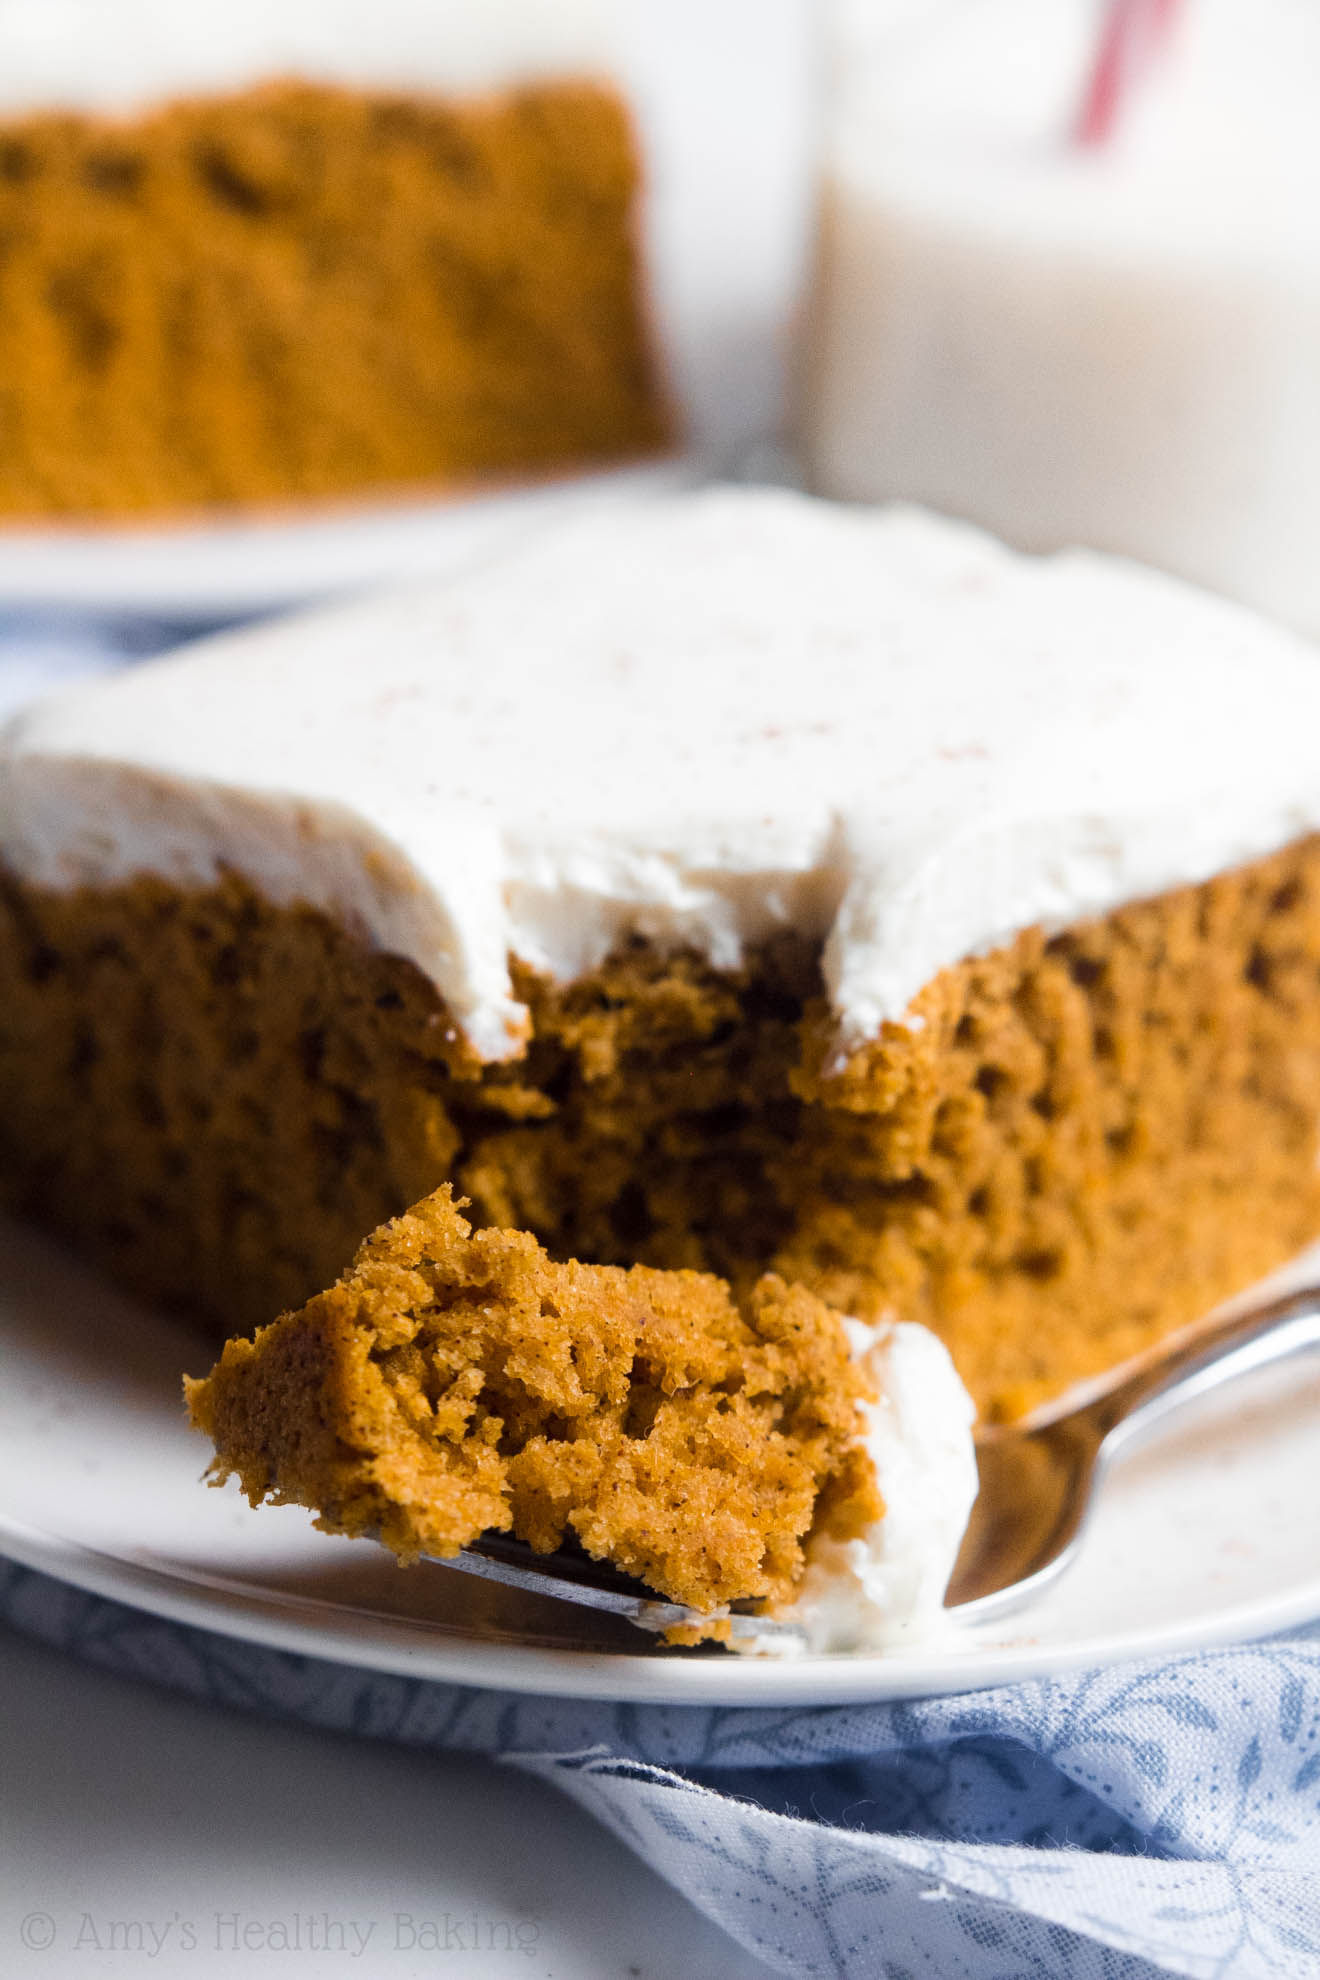 Best Cream Cheese Frosting Recipe For Pumpkin Spice Cake